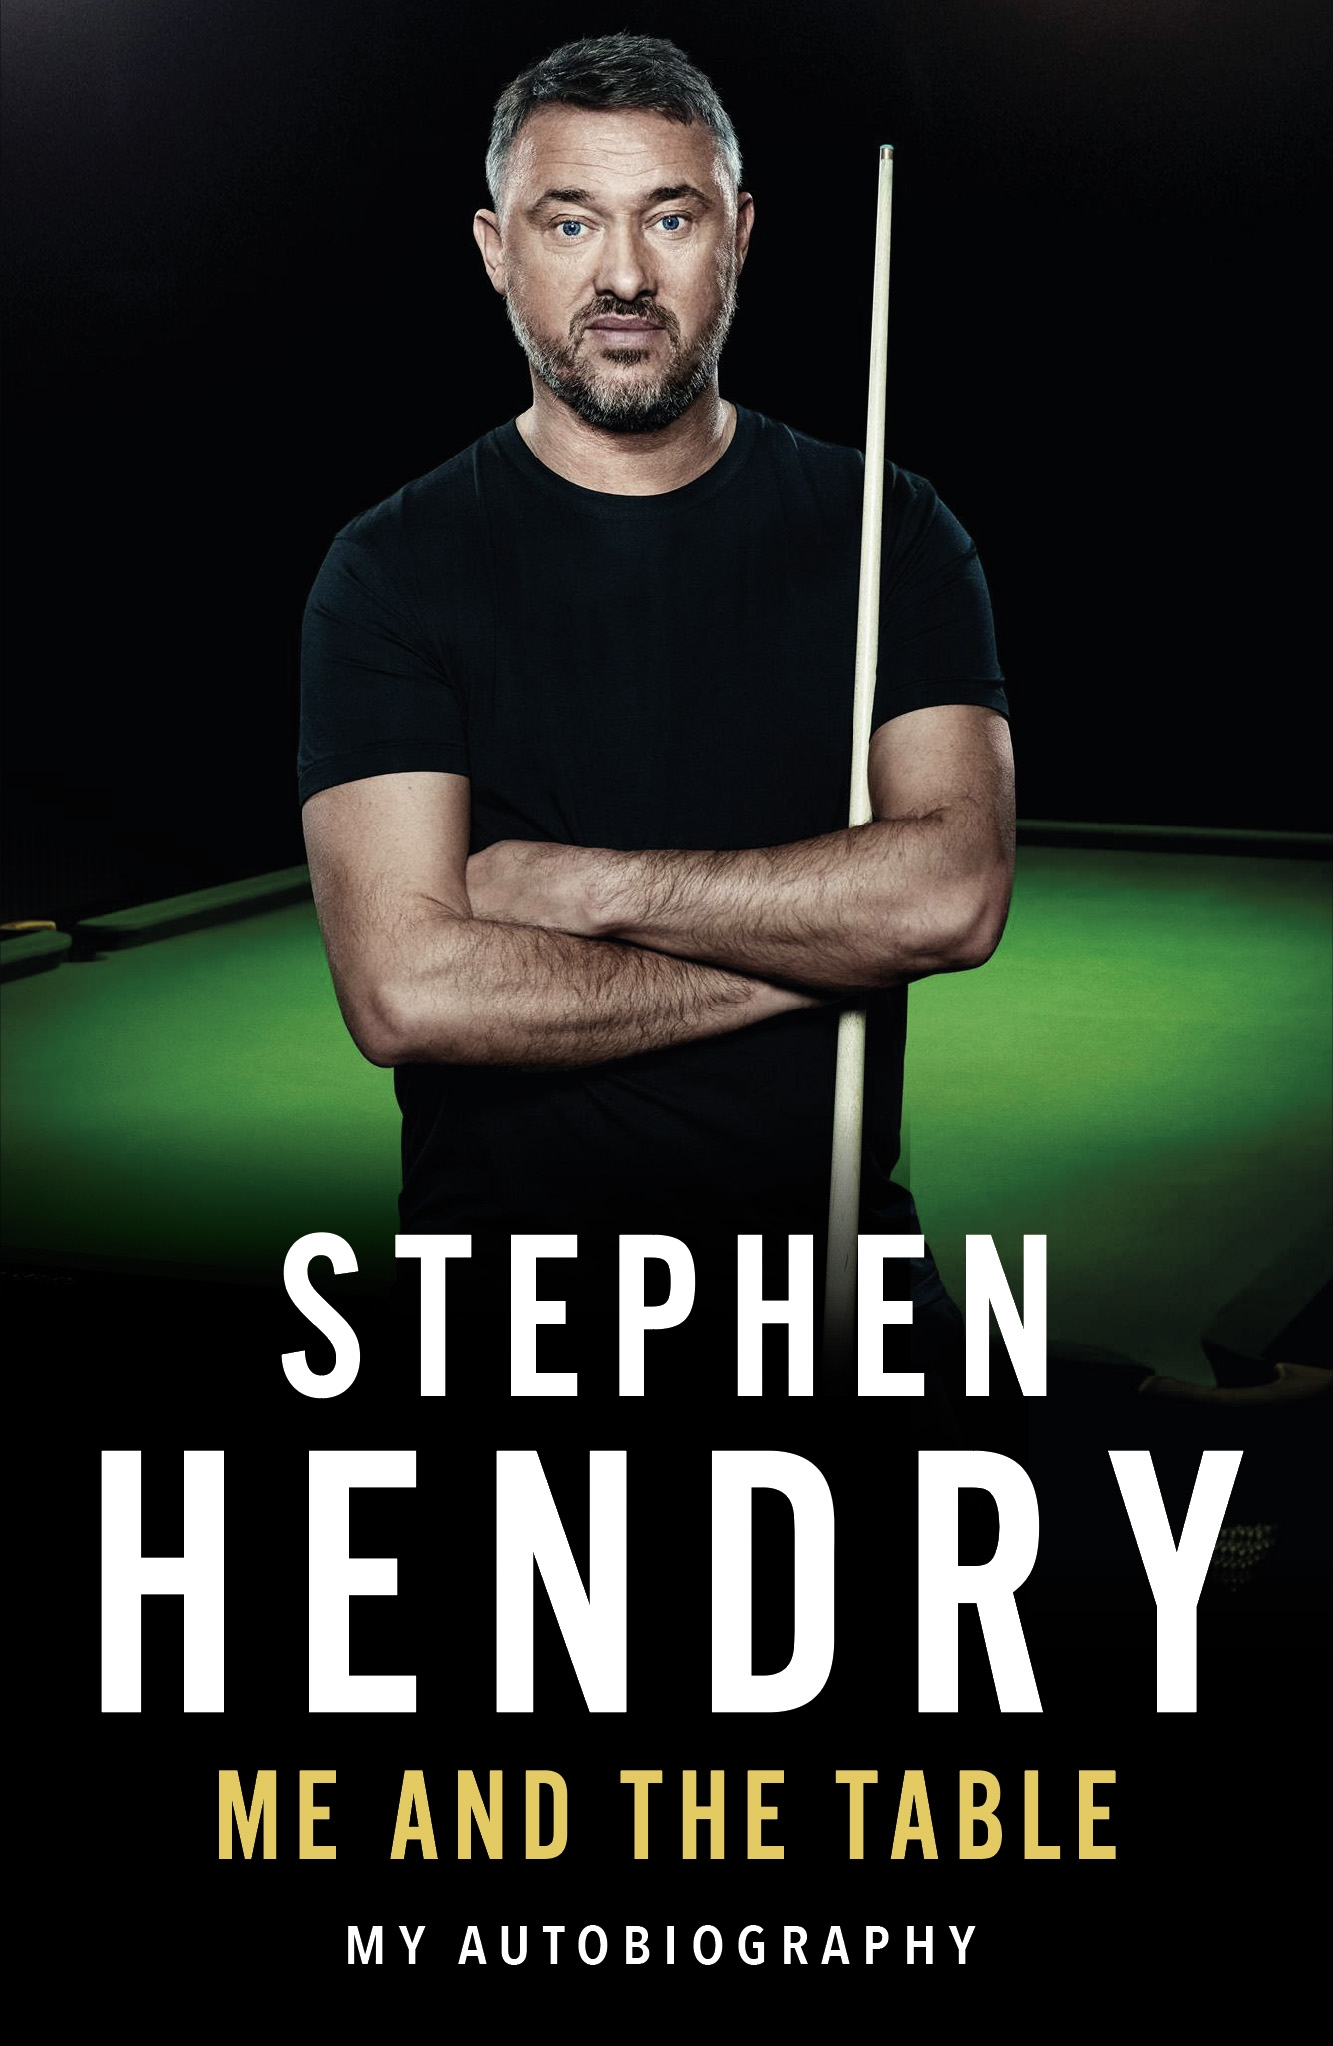 At the age of 12, Stephen Hendry spotted a snooker table in the window of  John Menzies while hunting for Christmas presents with his mother.